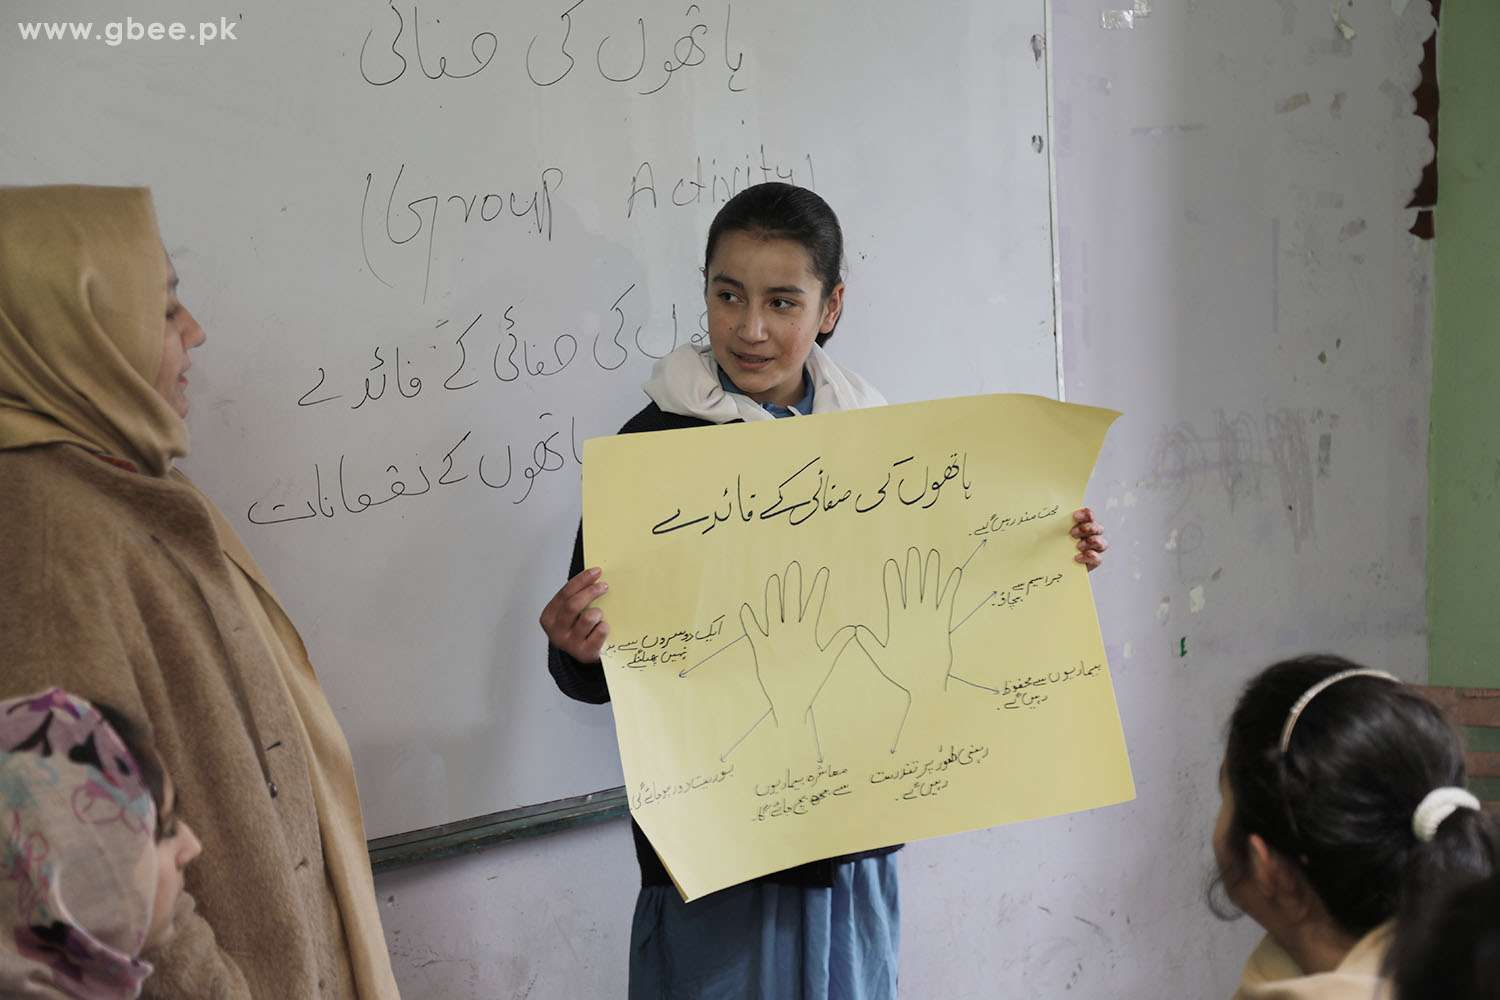 A Hunza school girl at Al Murtaza School in Hunza Valley, Gilgit-Baltistan